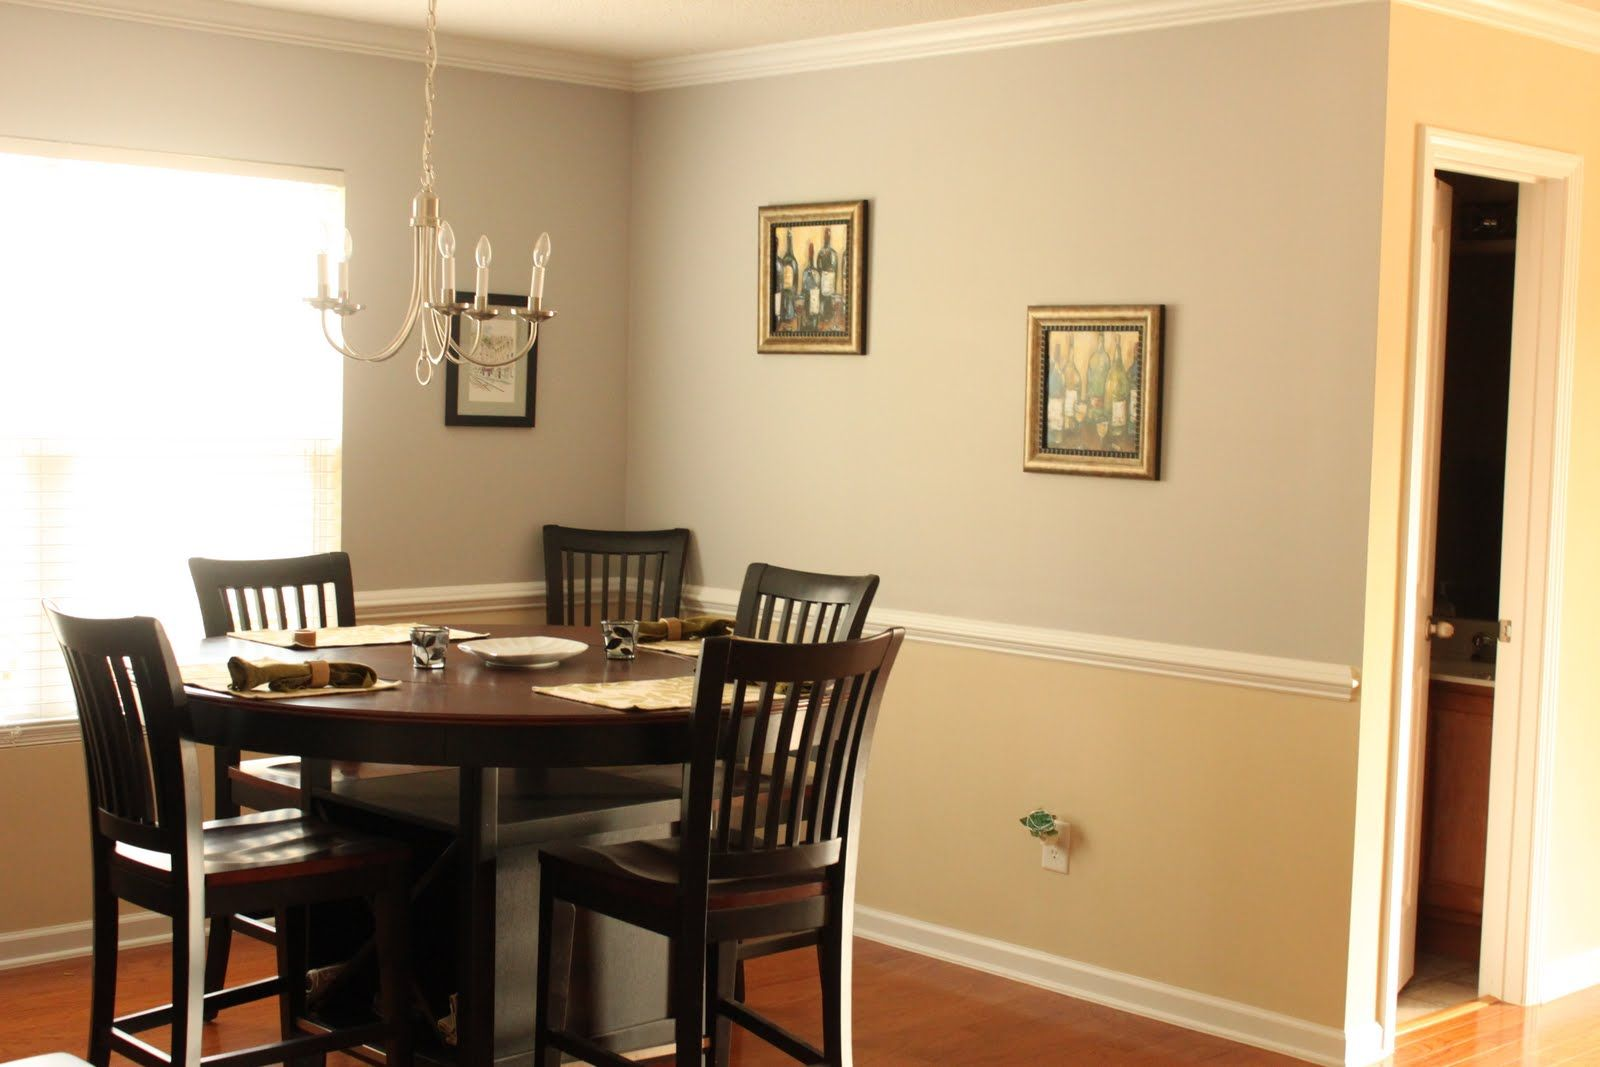 Gray and Beige Scheme Best Color to Paint a Interior Room for Dining ...